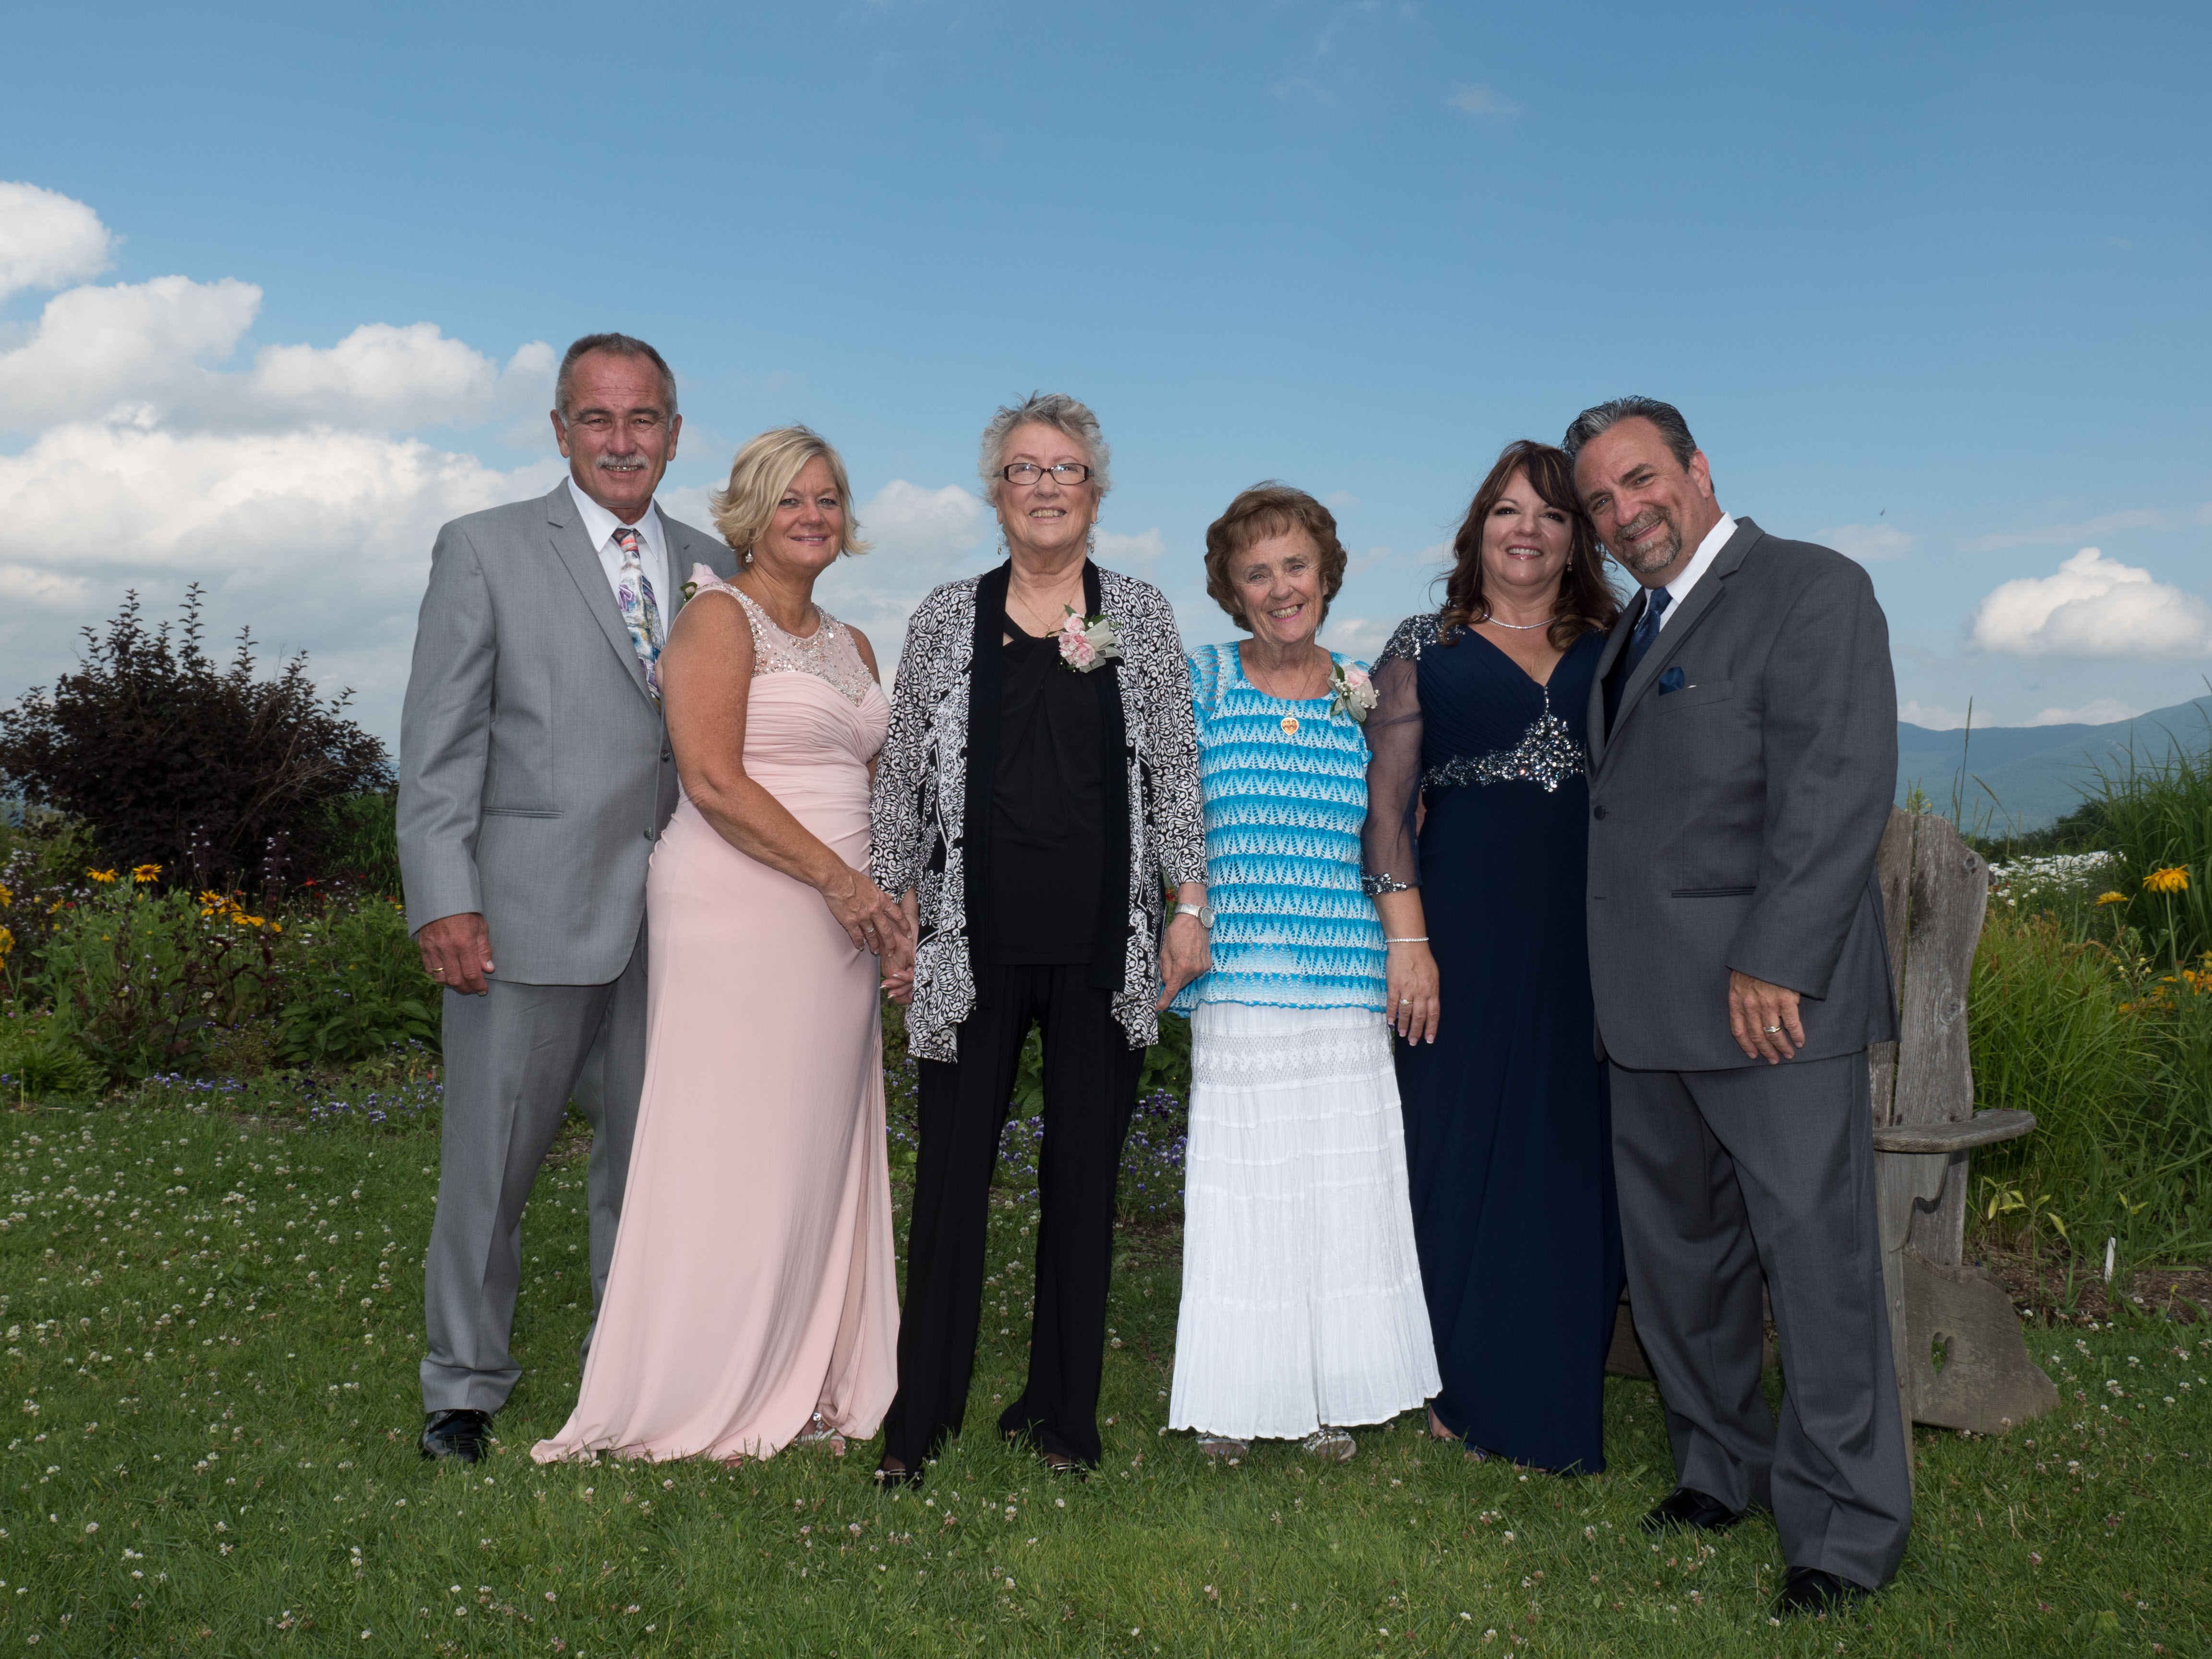 Wedding At Von Trapp Family Lodge In Stowe 6